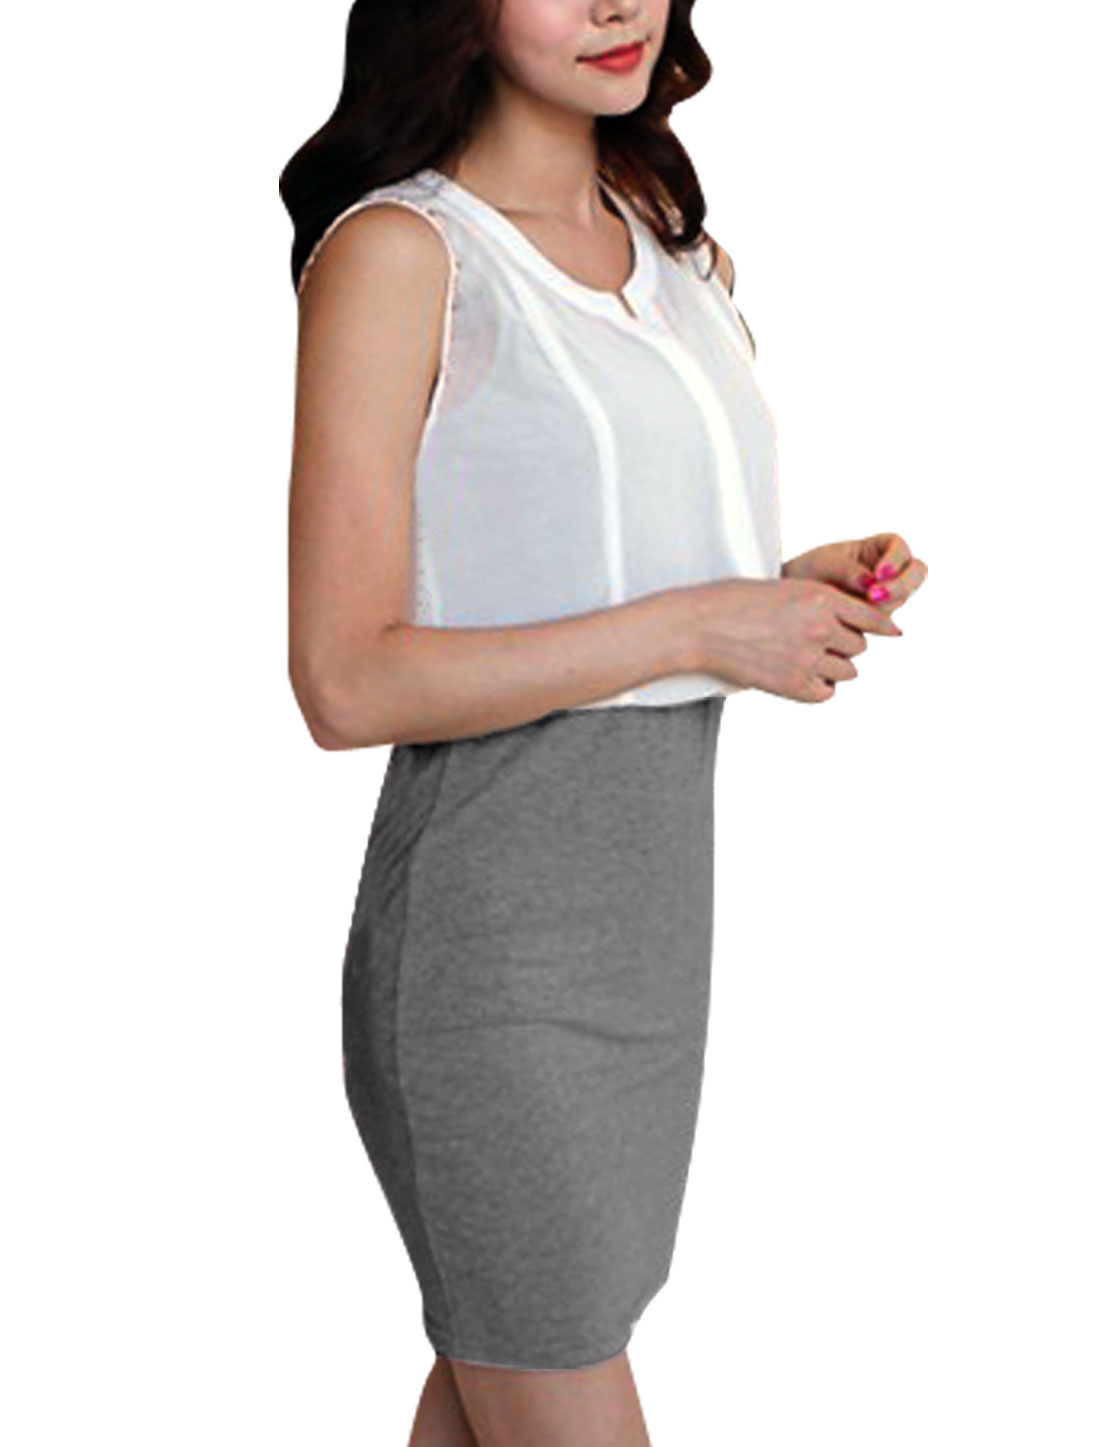 Lady Hip Tight Fashion Sleeveless Button Hidden Heather Gray White Dress XS